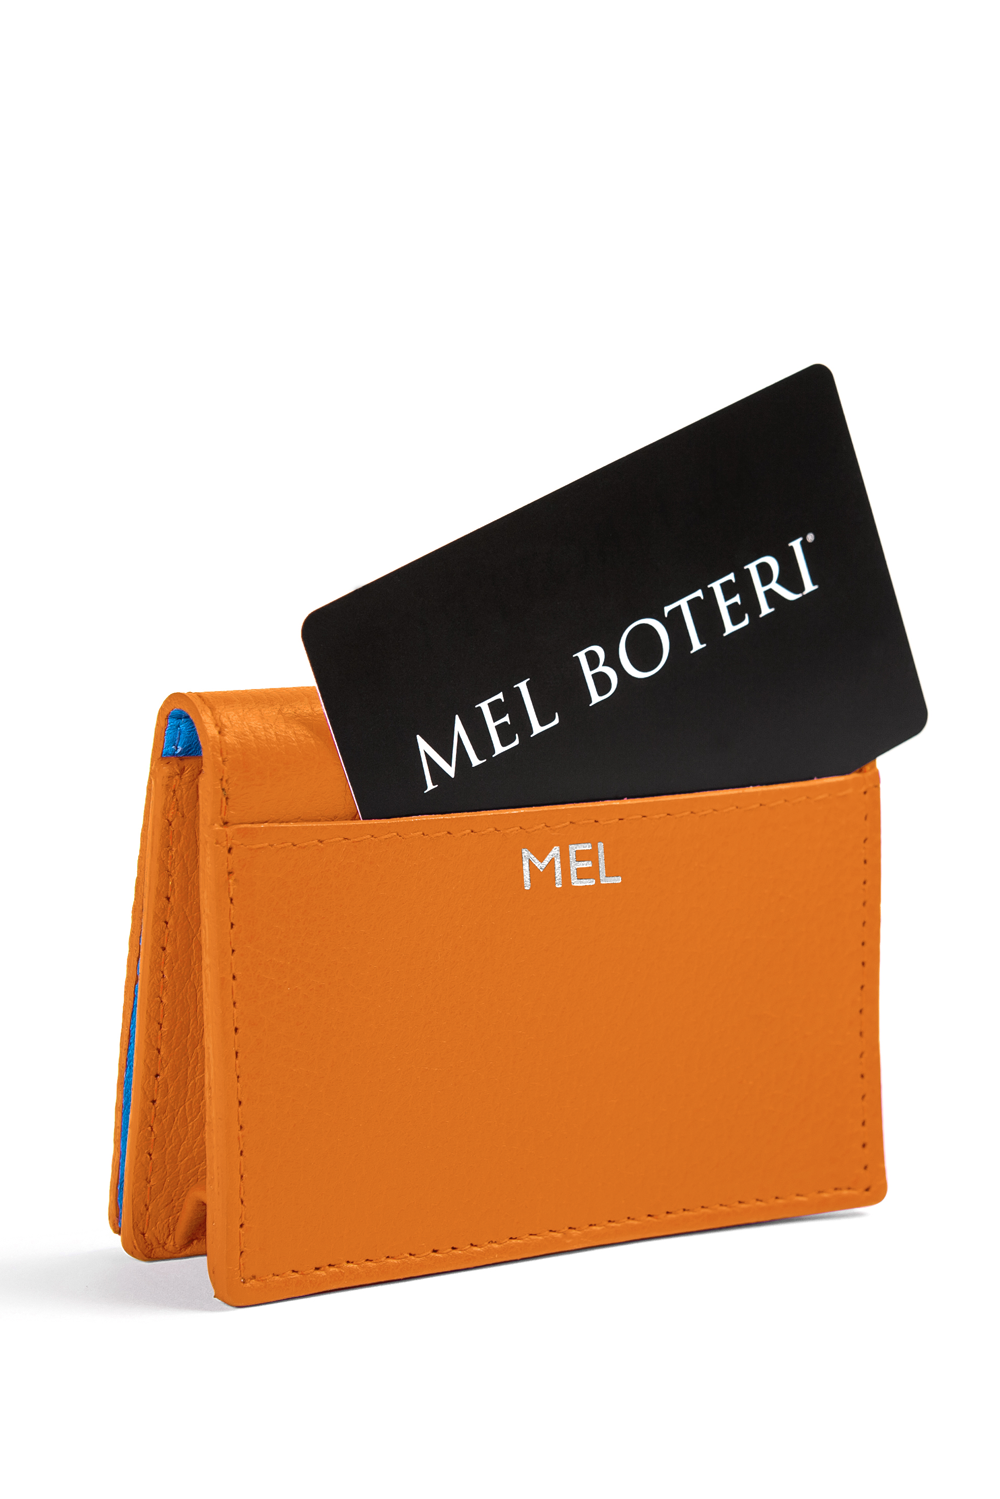 The Mel Boteri Leather Card Holder | Tiger Leather With Silver Monogram | Mel Boteri Gift Ideas | Design Your Own